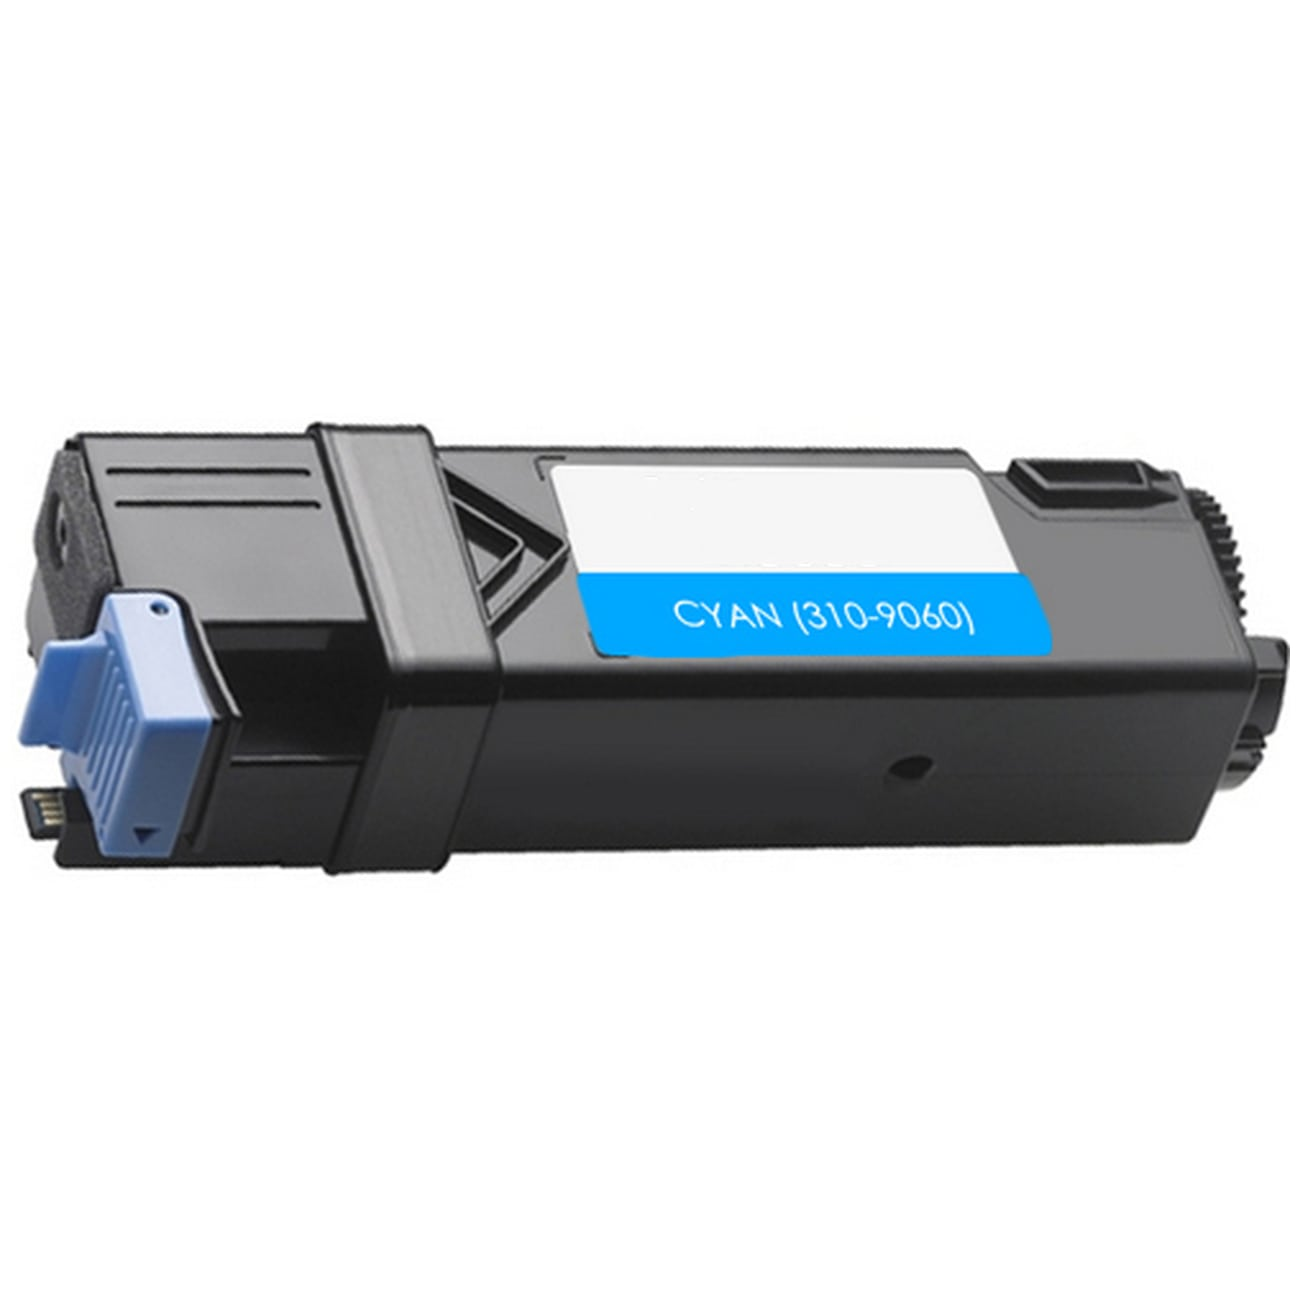 310-9060 Toner Cartridge - Dell New Compatible  (Cyan)